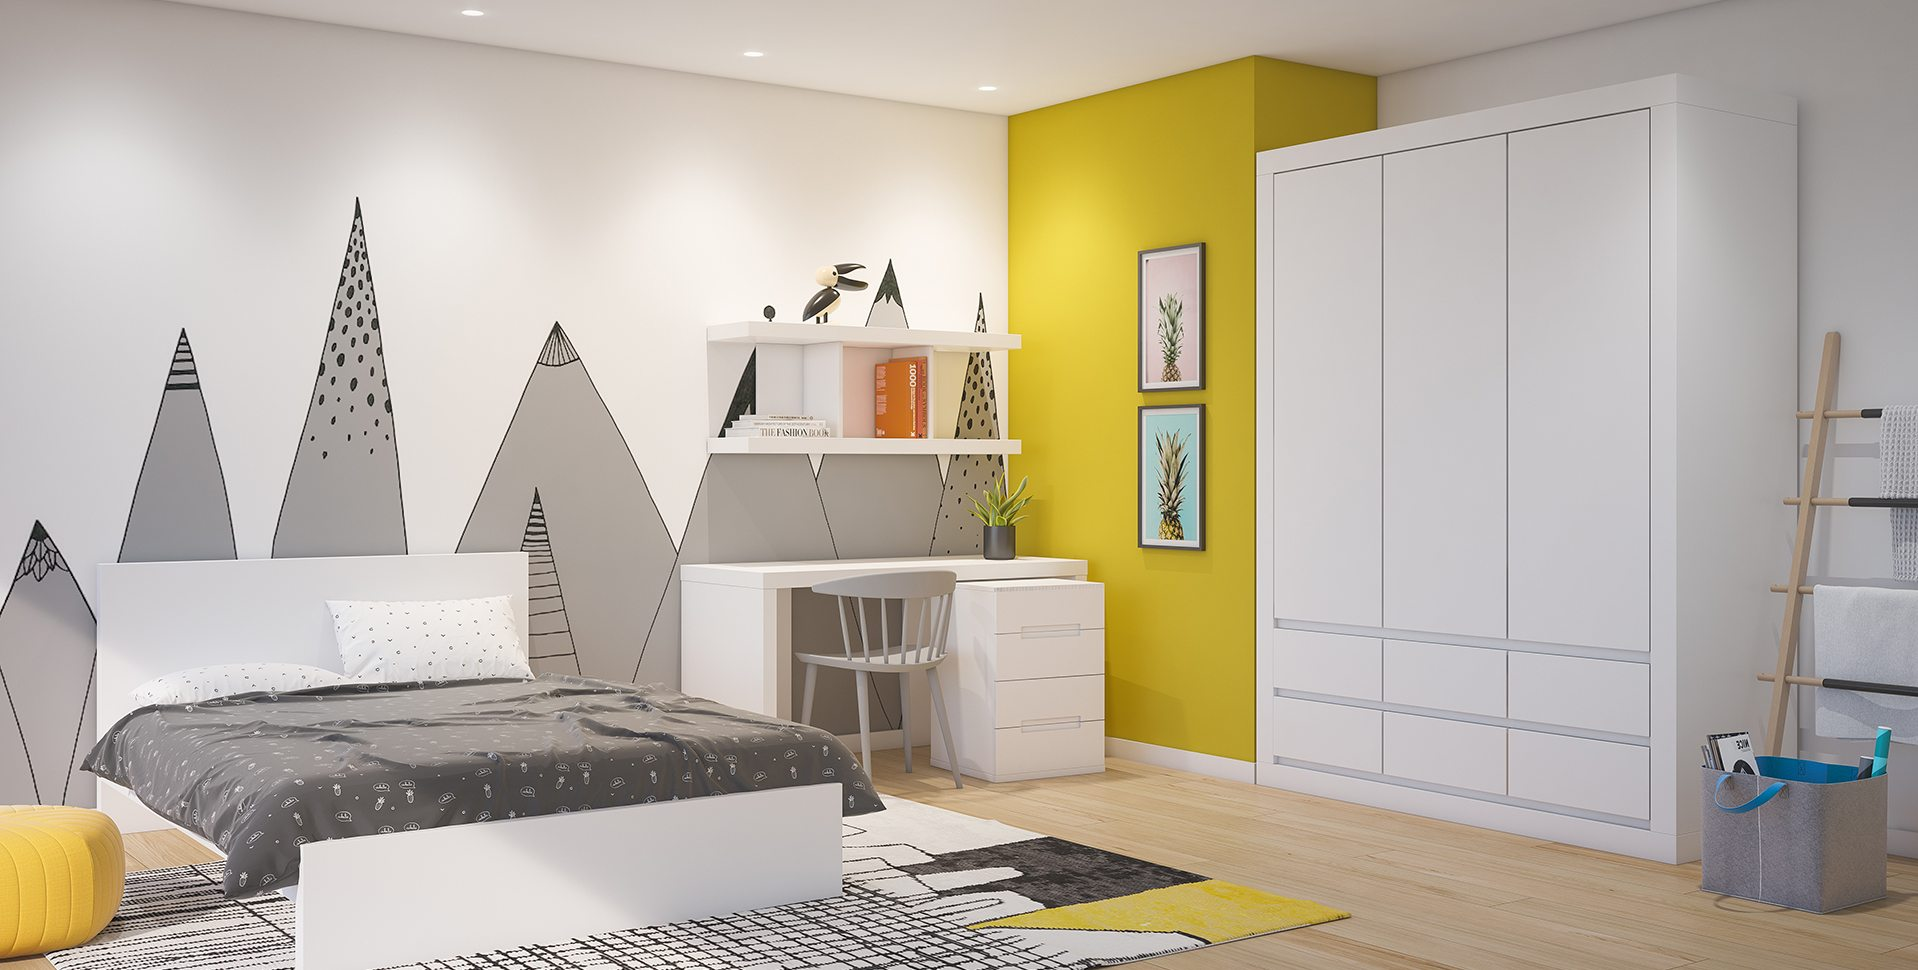 Maayan-Golan_Architectural-Visualization_product-visualization_childrens-furniture_Barzilay_teenage-room_01